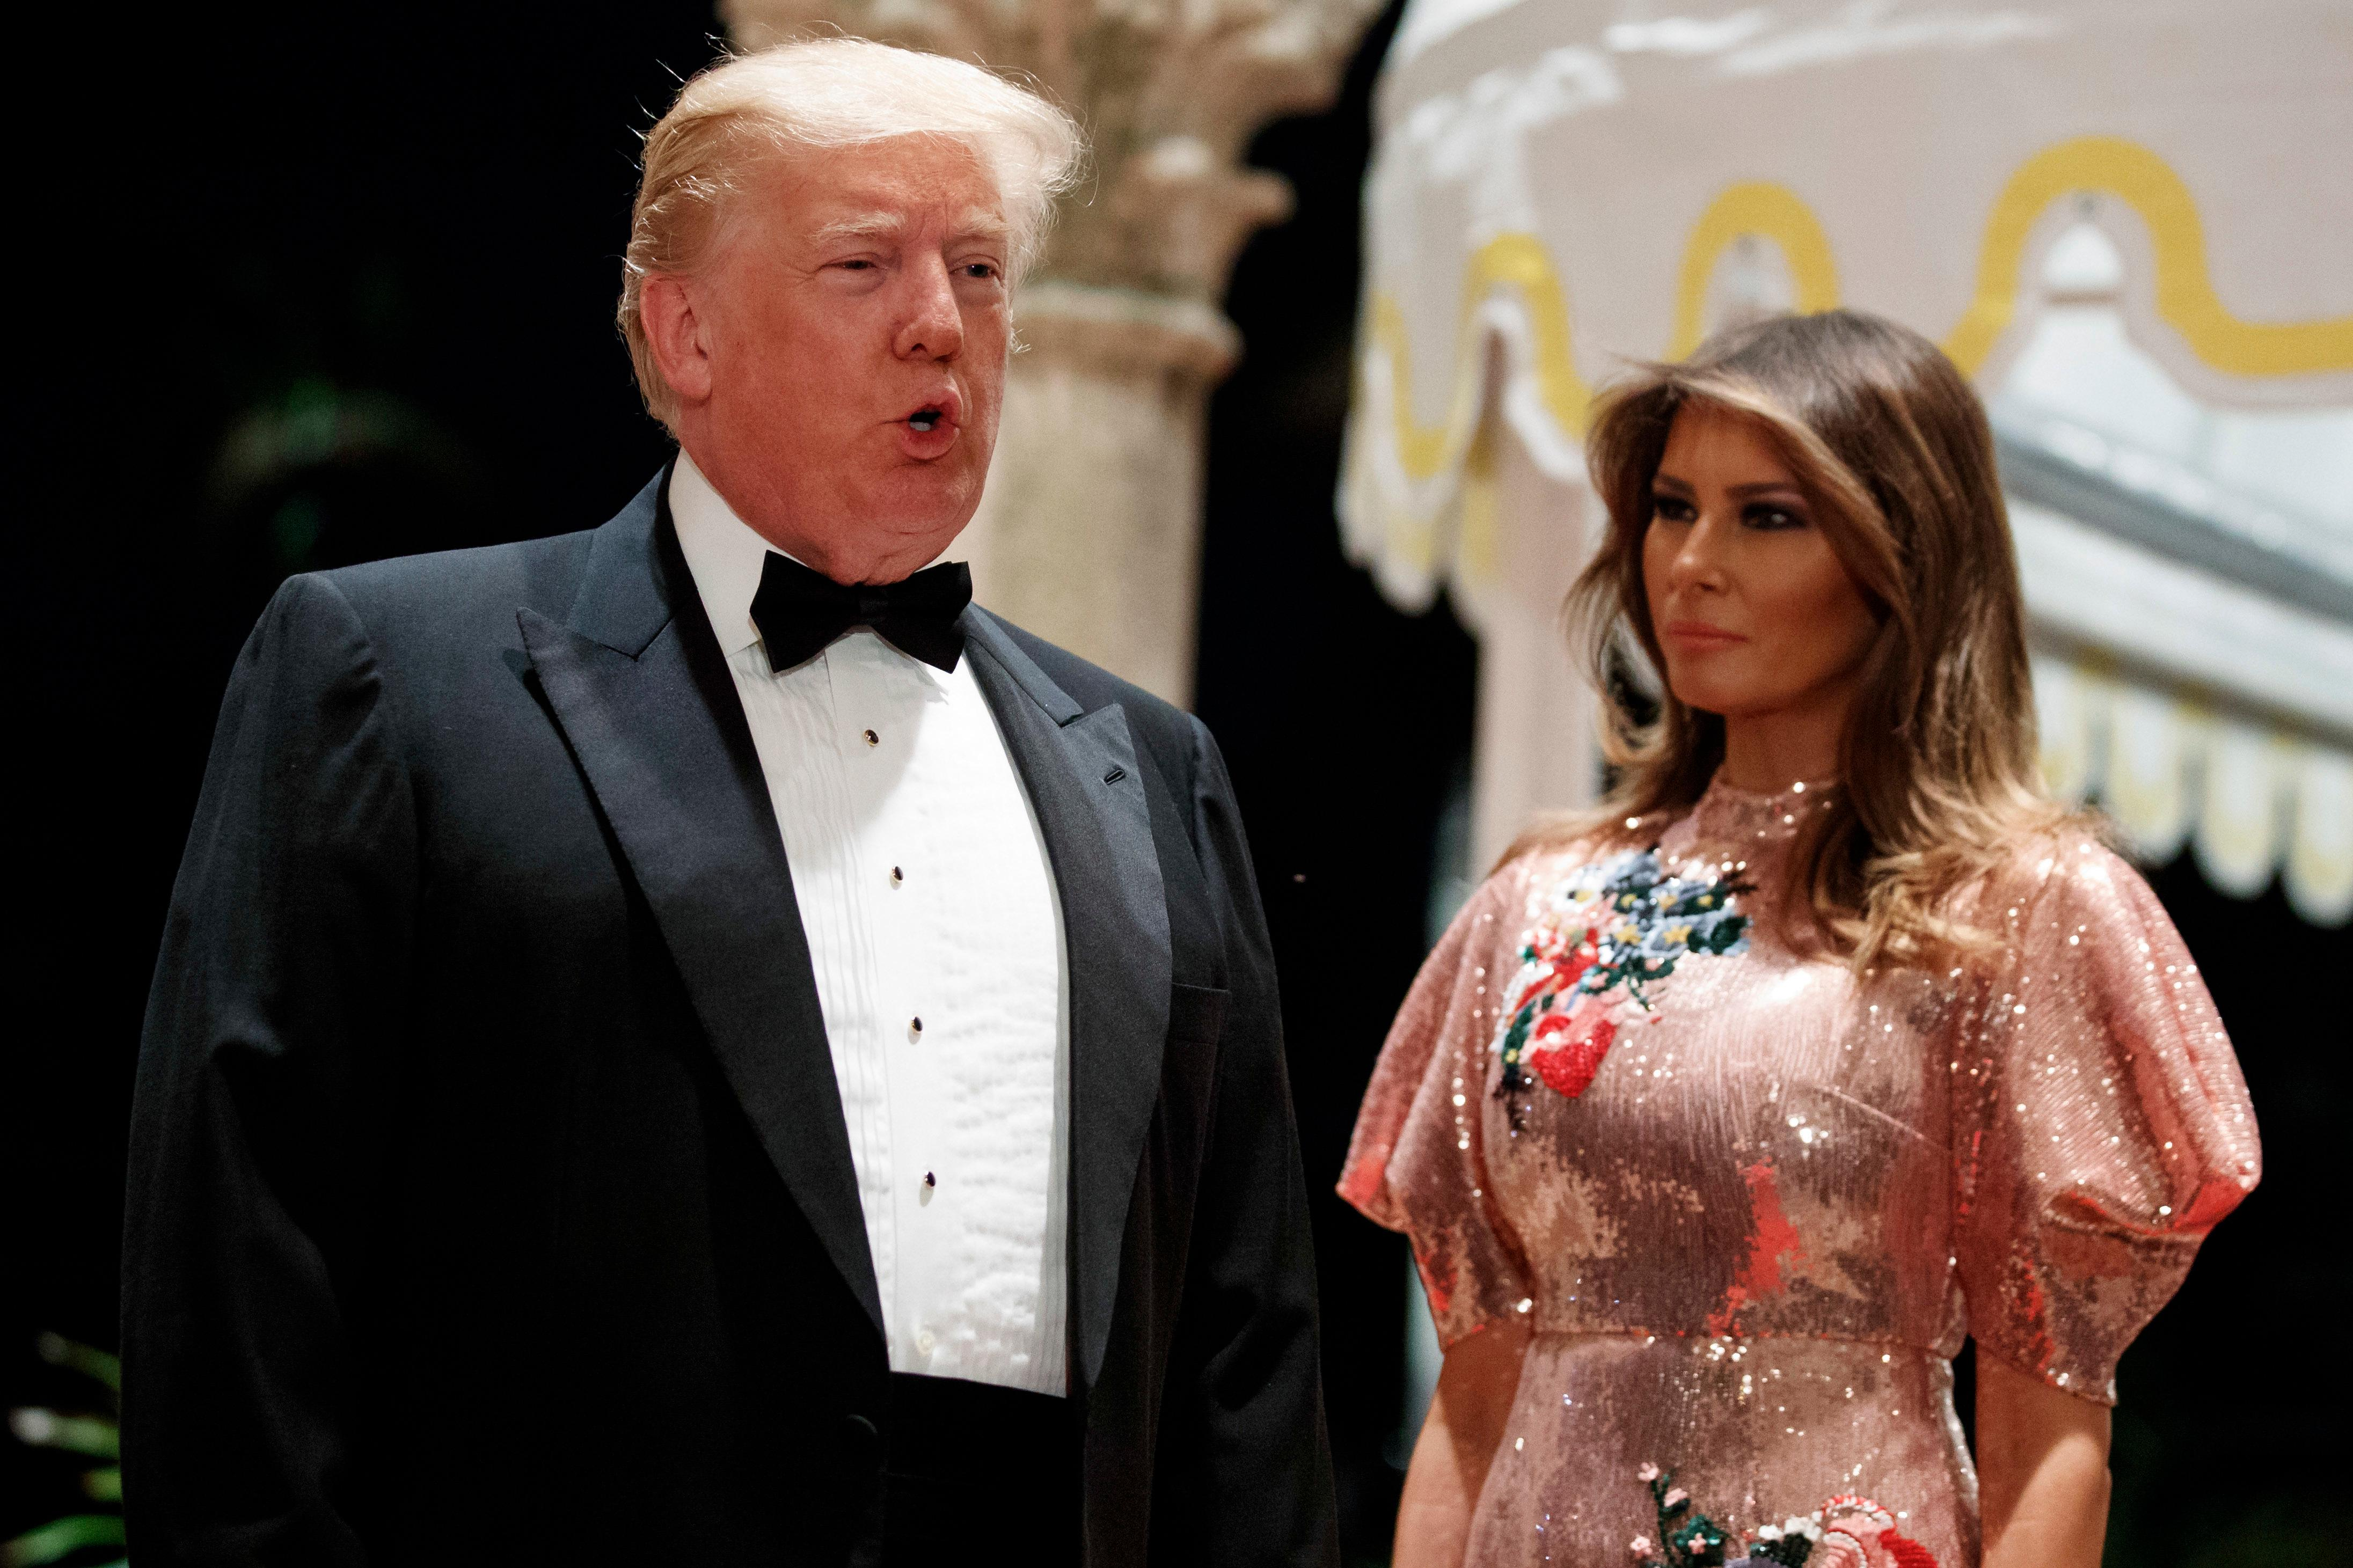 First lady Melania Trump looks on as President Donald Trump speaks with reporters after arriving for a New Year's Eve gala at his Mar-a-Lago resort, Sunday, Dec. 31, 2017, in Palm Beach, Fla. (AP Photo/Evan Vucci)